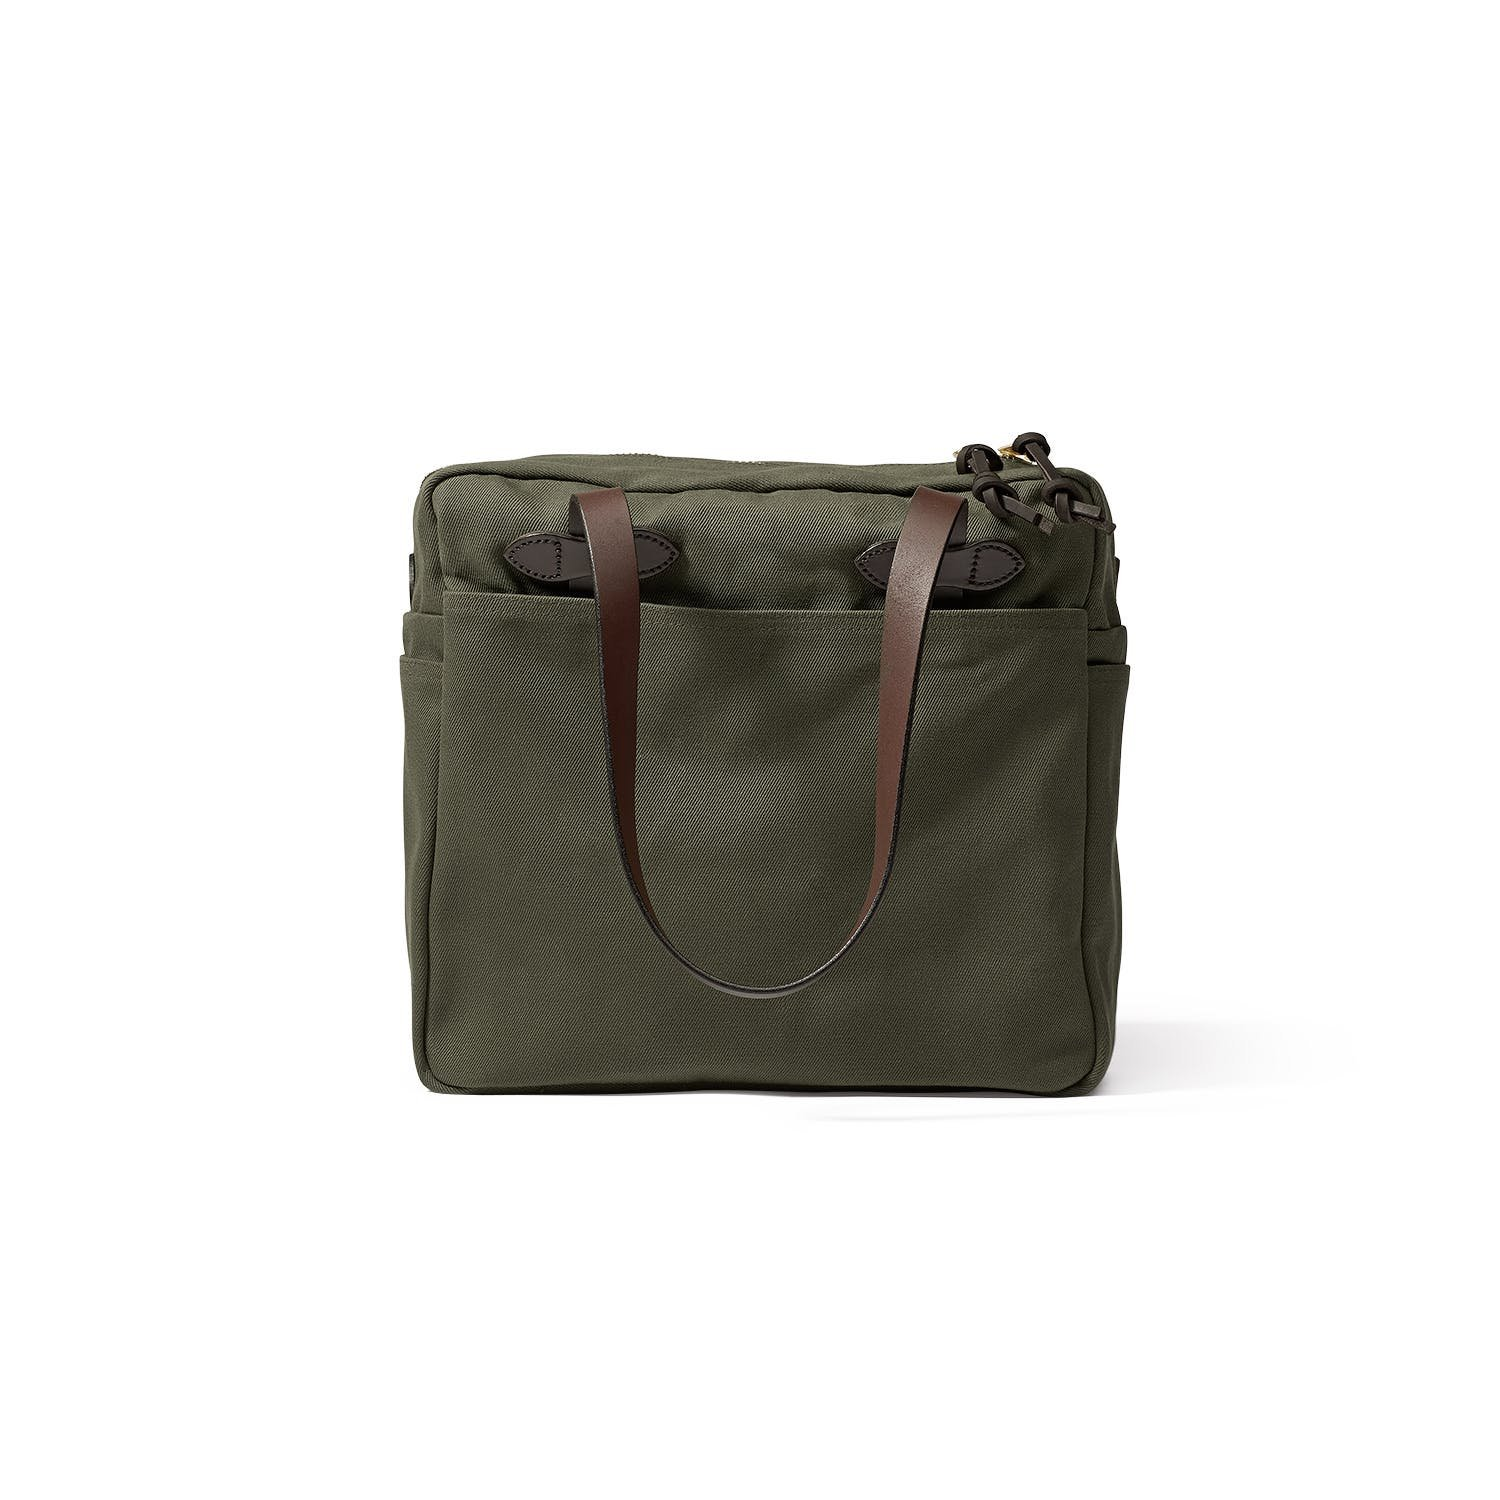 Filson Tote Bag with Zipper, Otter Green by Filson